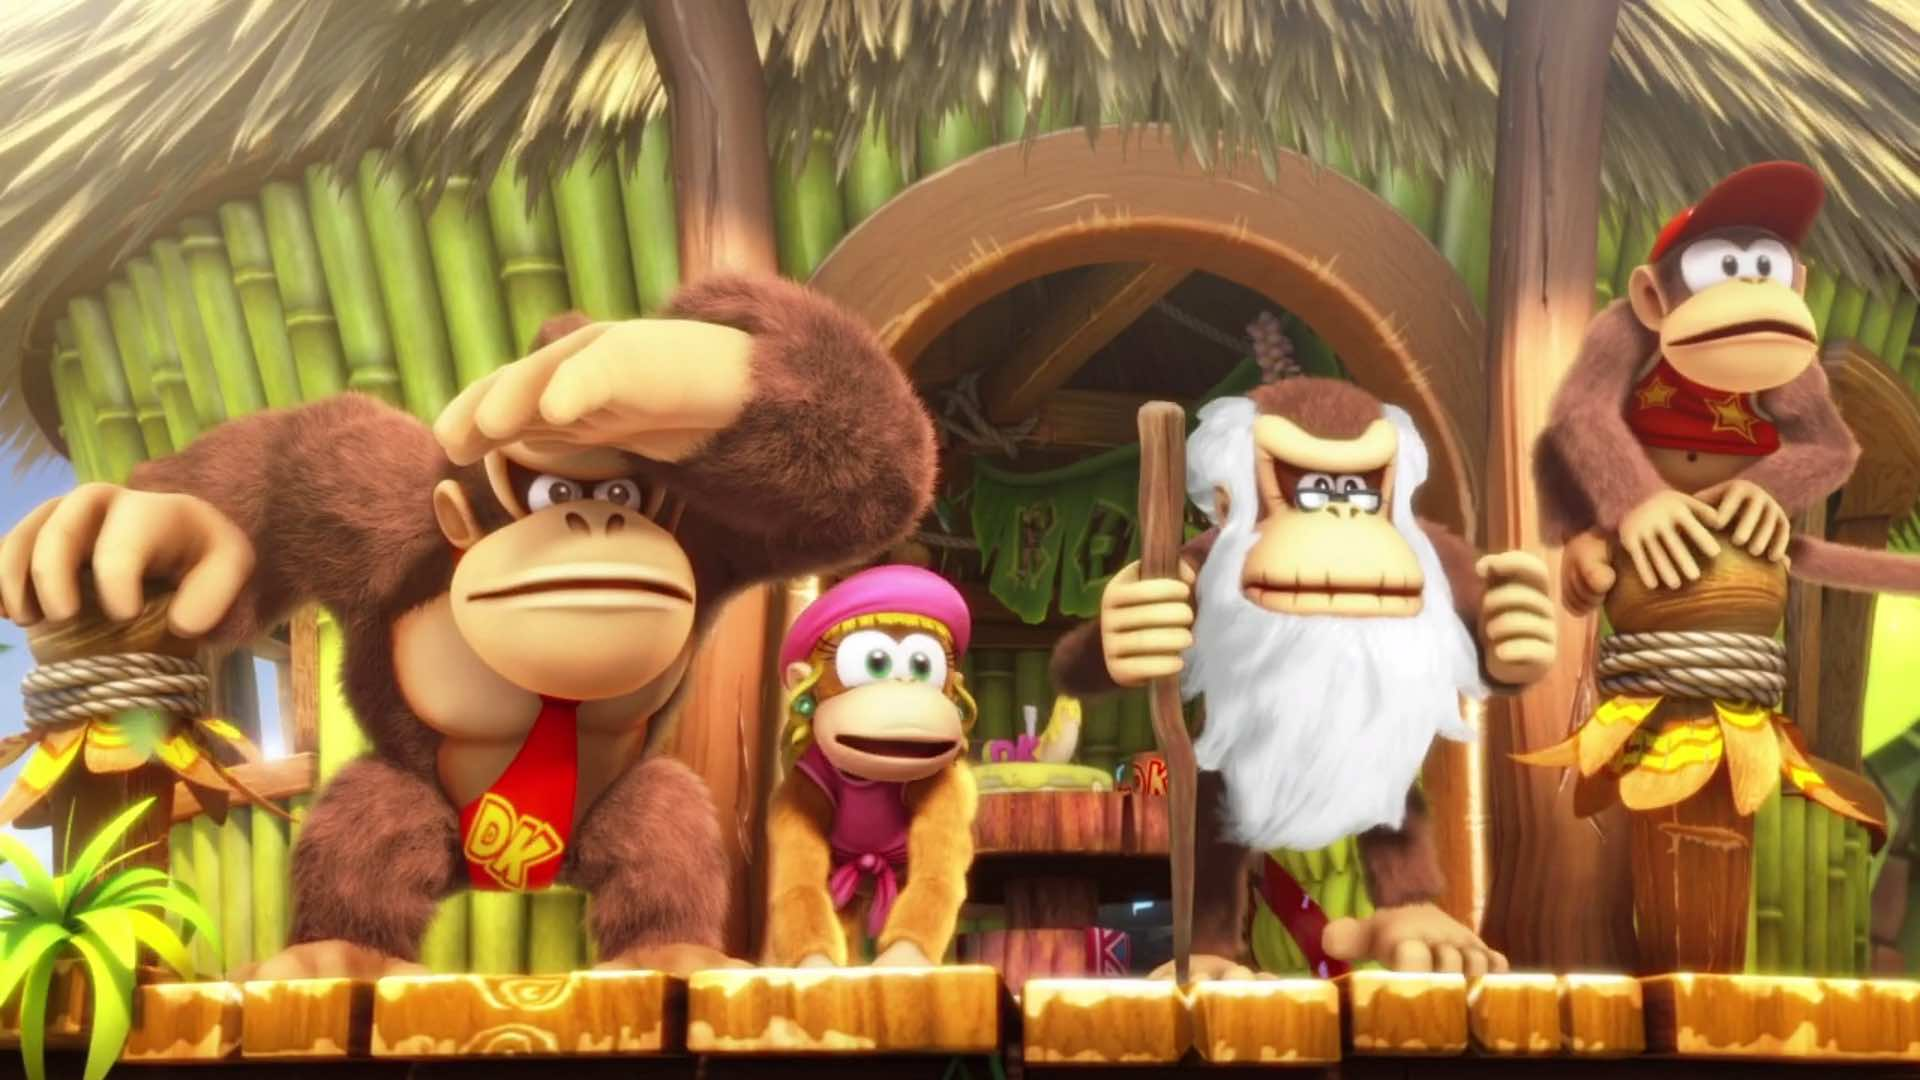 Donkey Kong Is Finally Coming To Switch, But With A Funky Twist